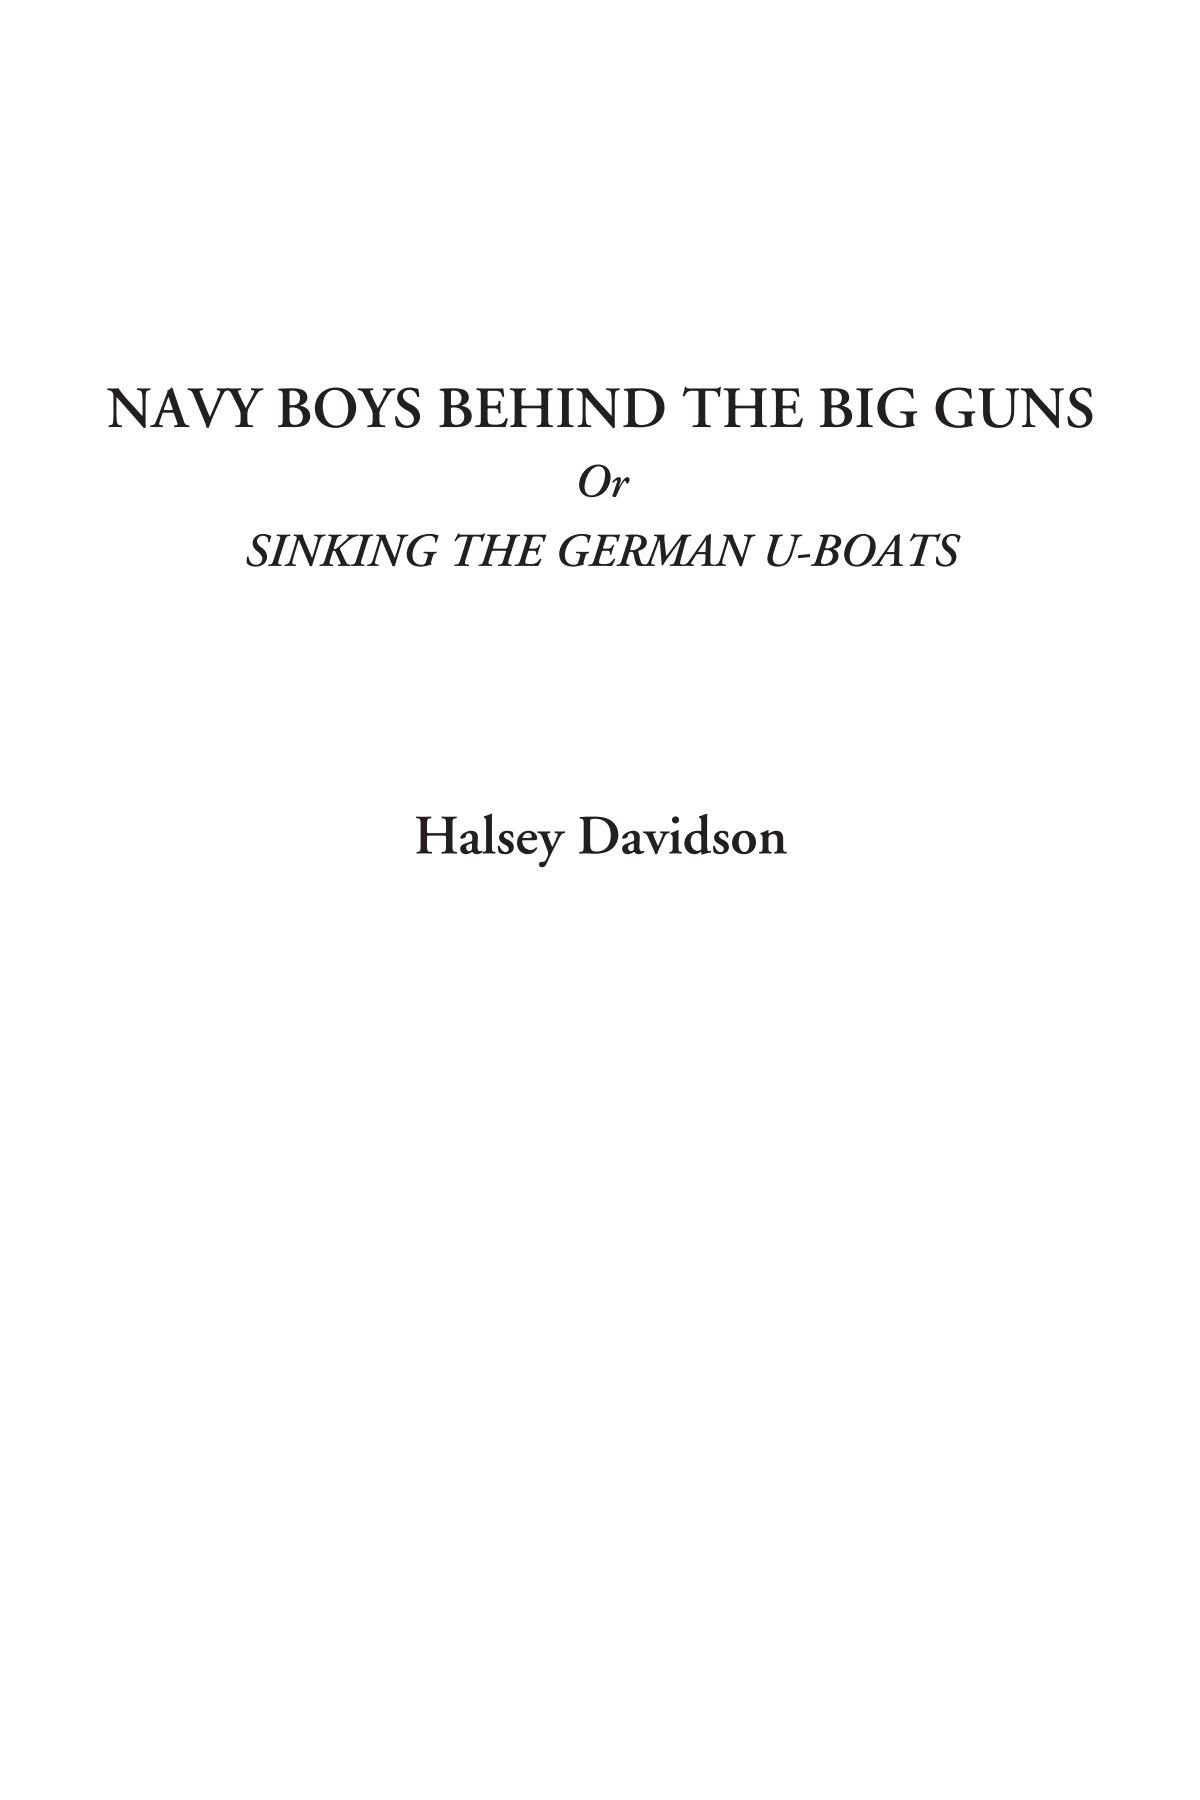 Read Online Navy Boys Behind the Big Guns Or Sinking the German U-Boats ebook